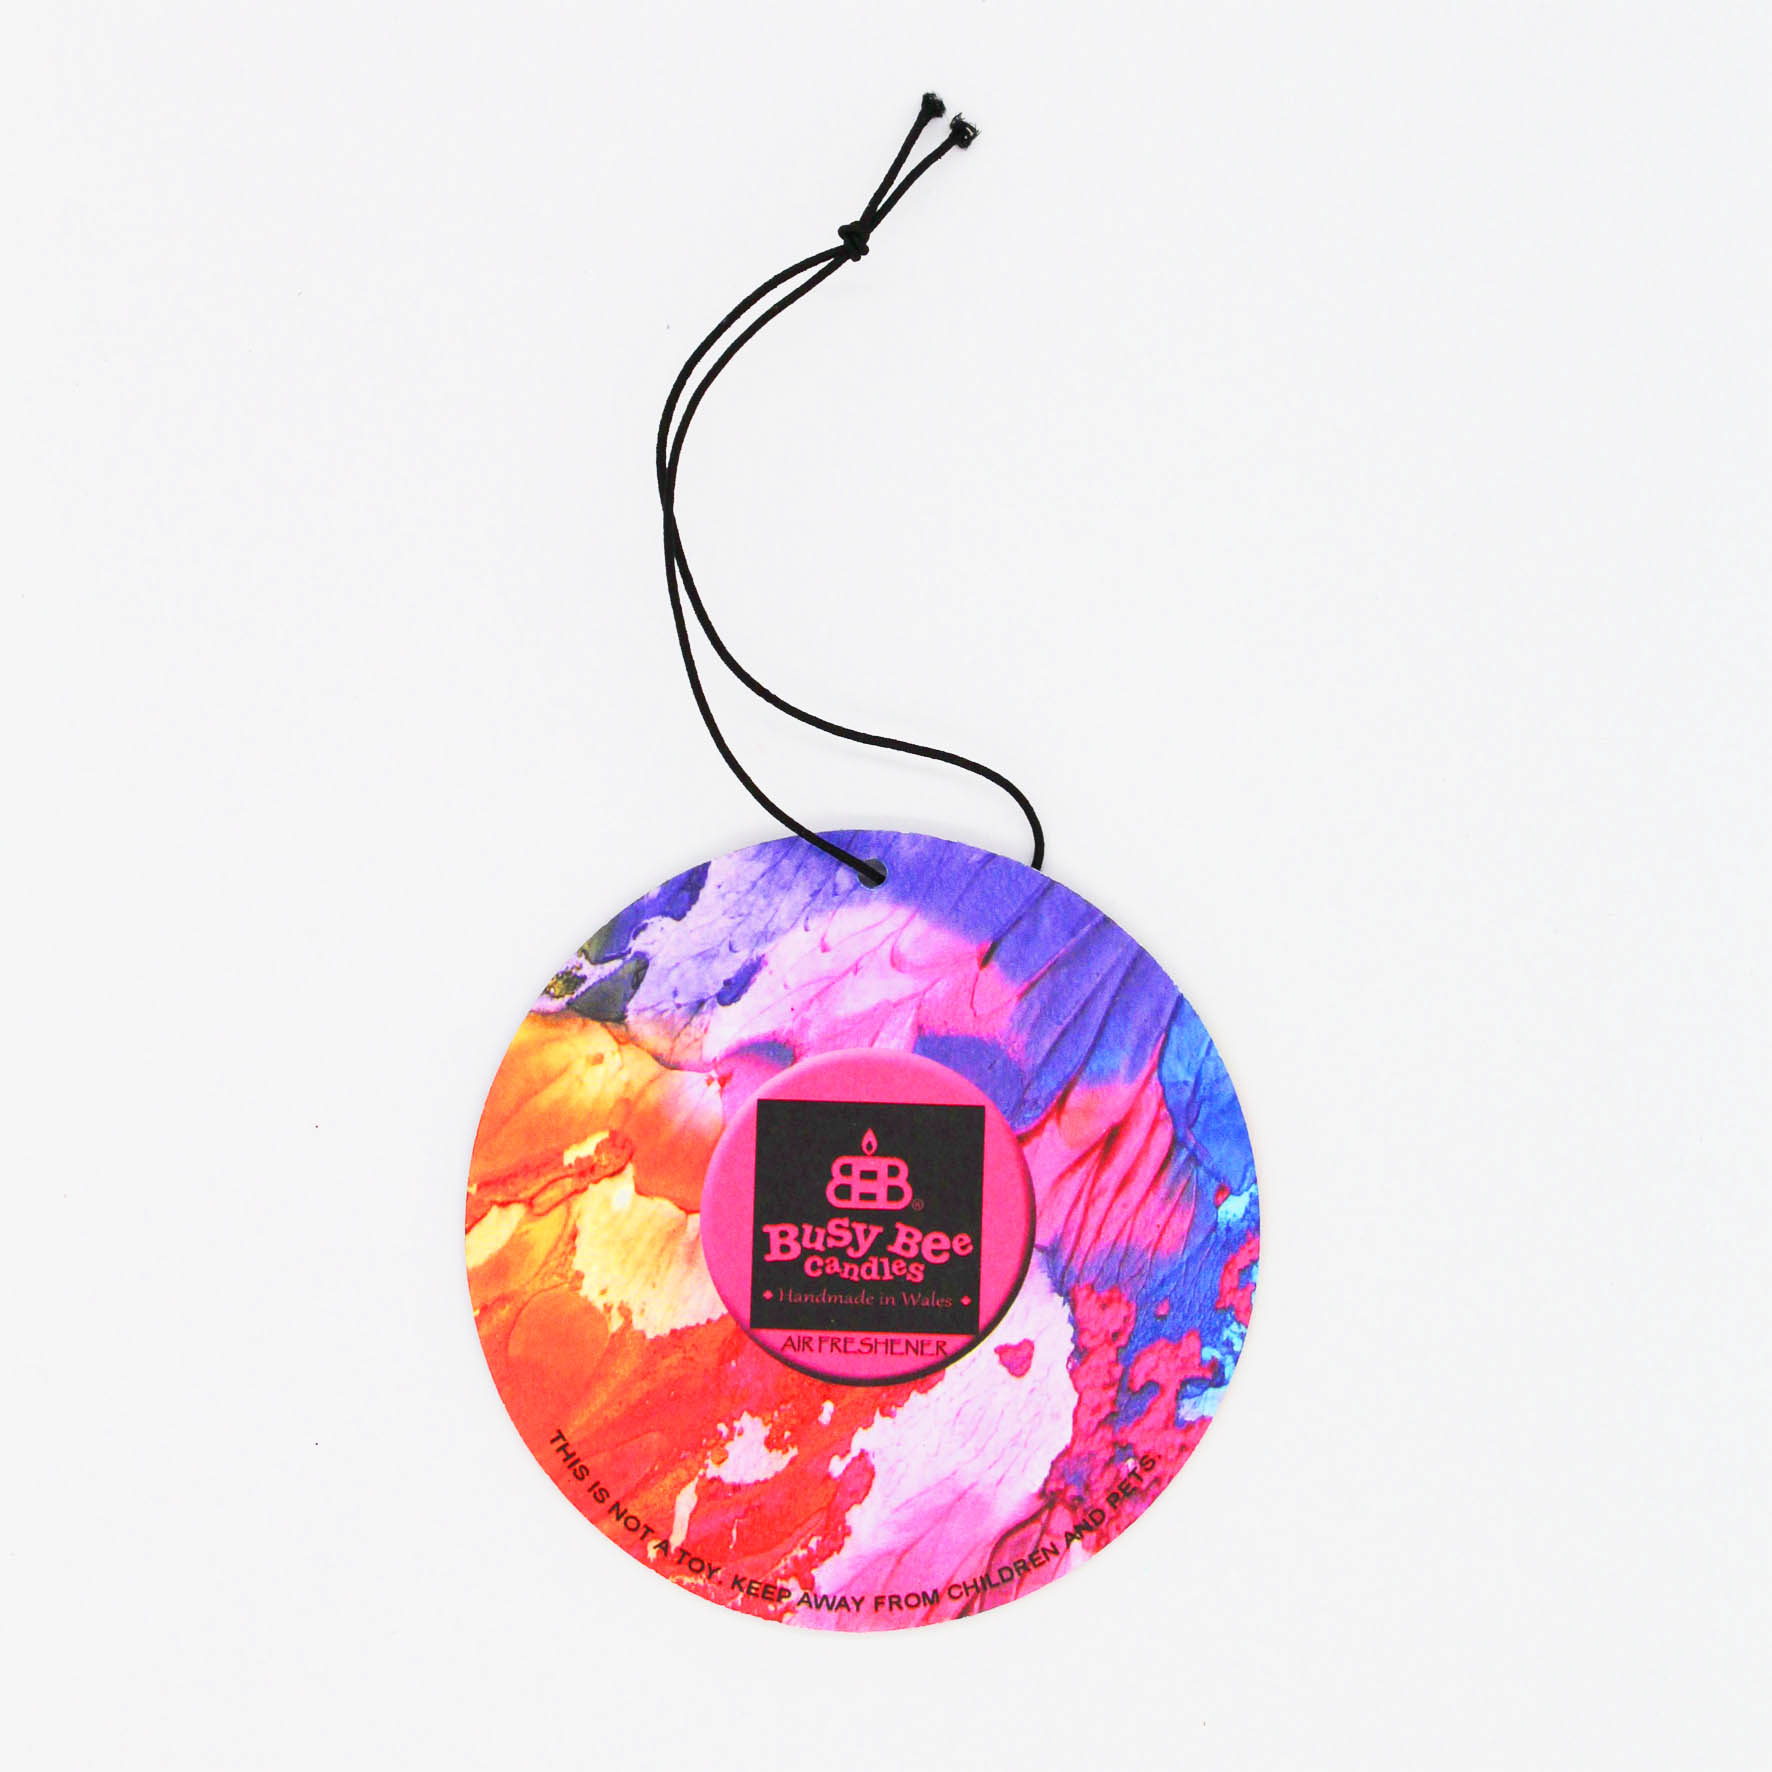 Orange Pop Hanging Air Freshener